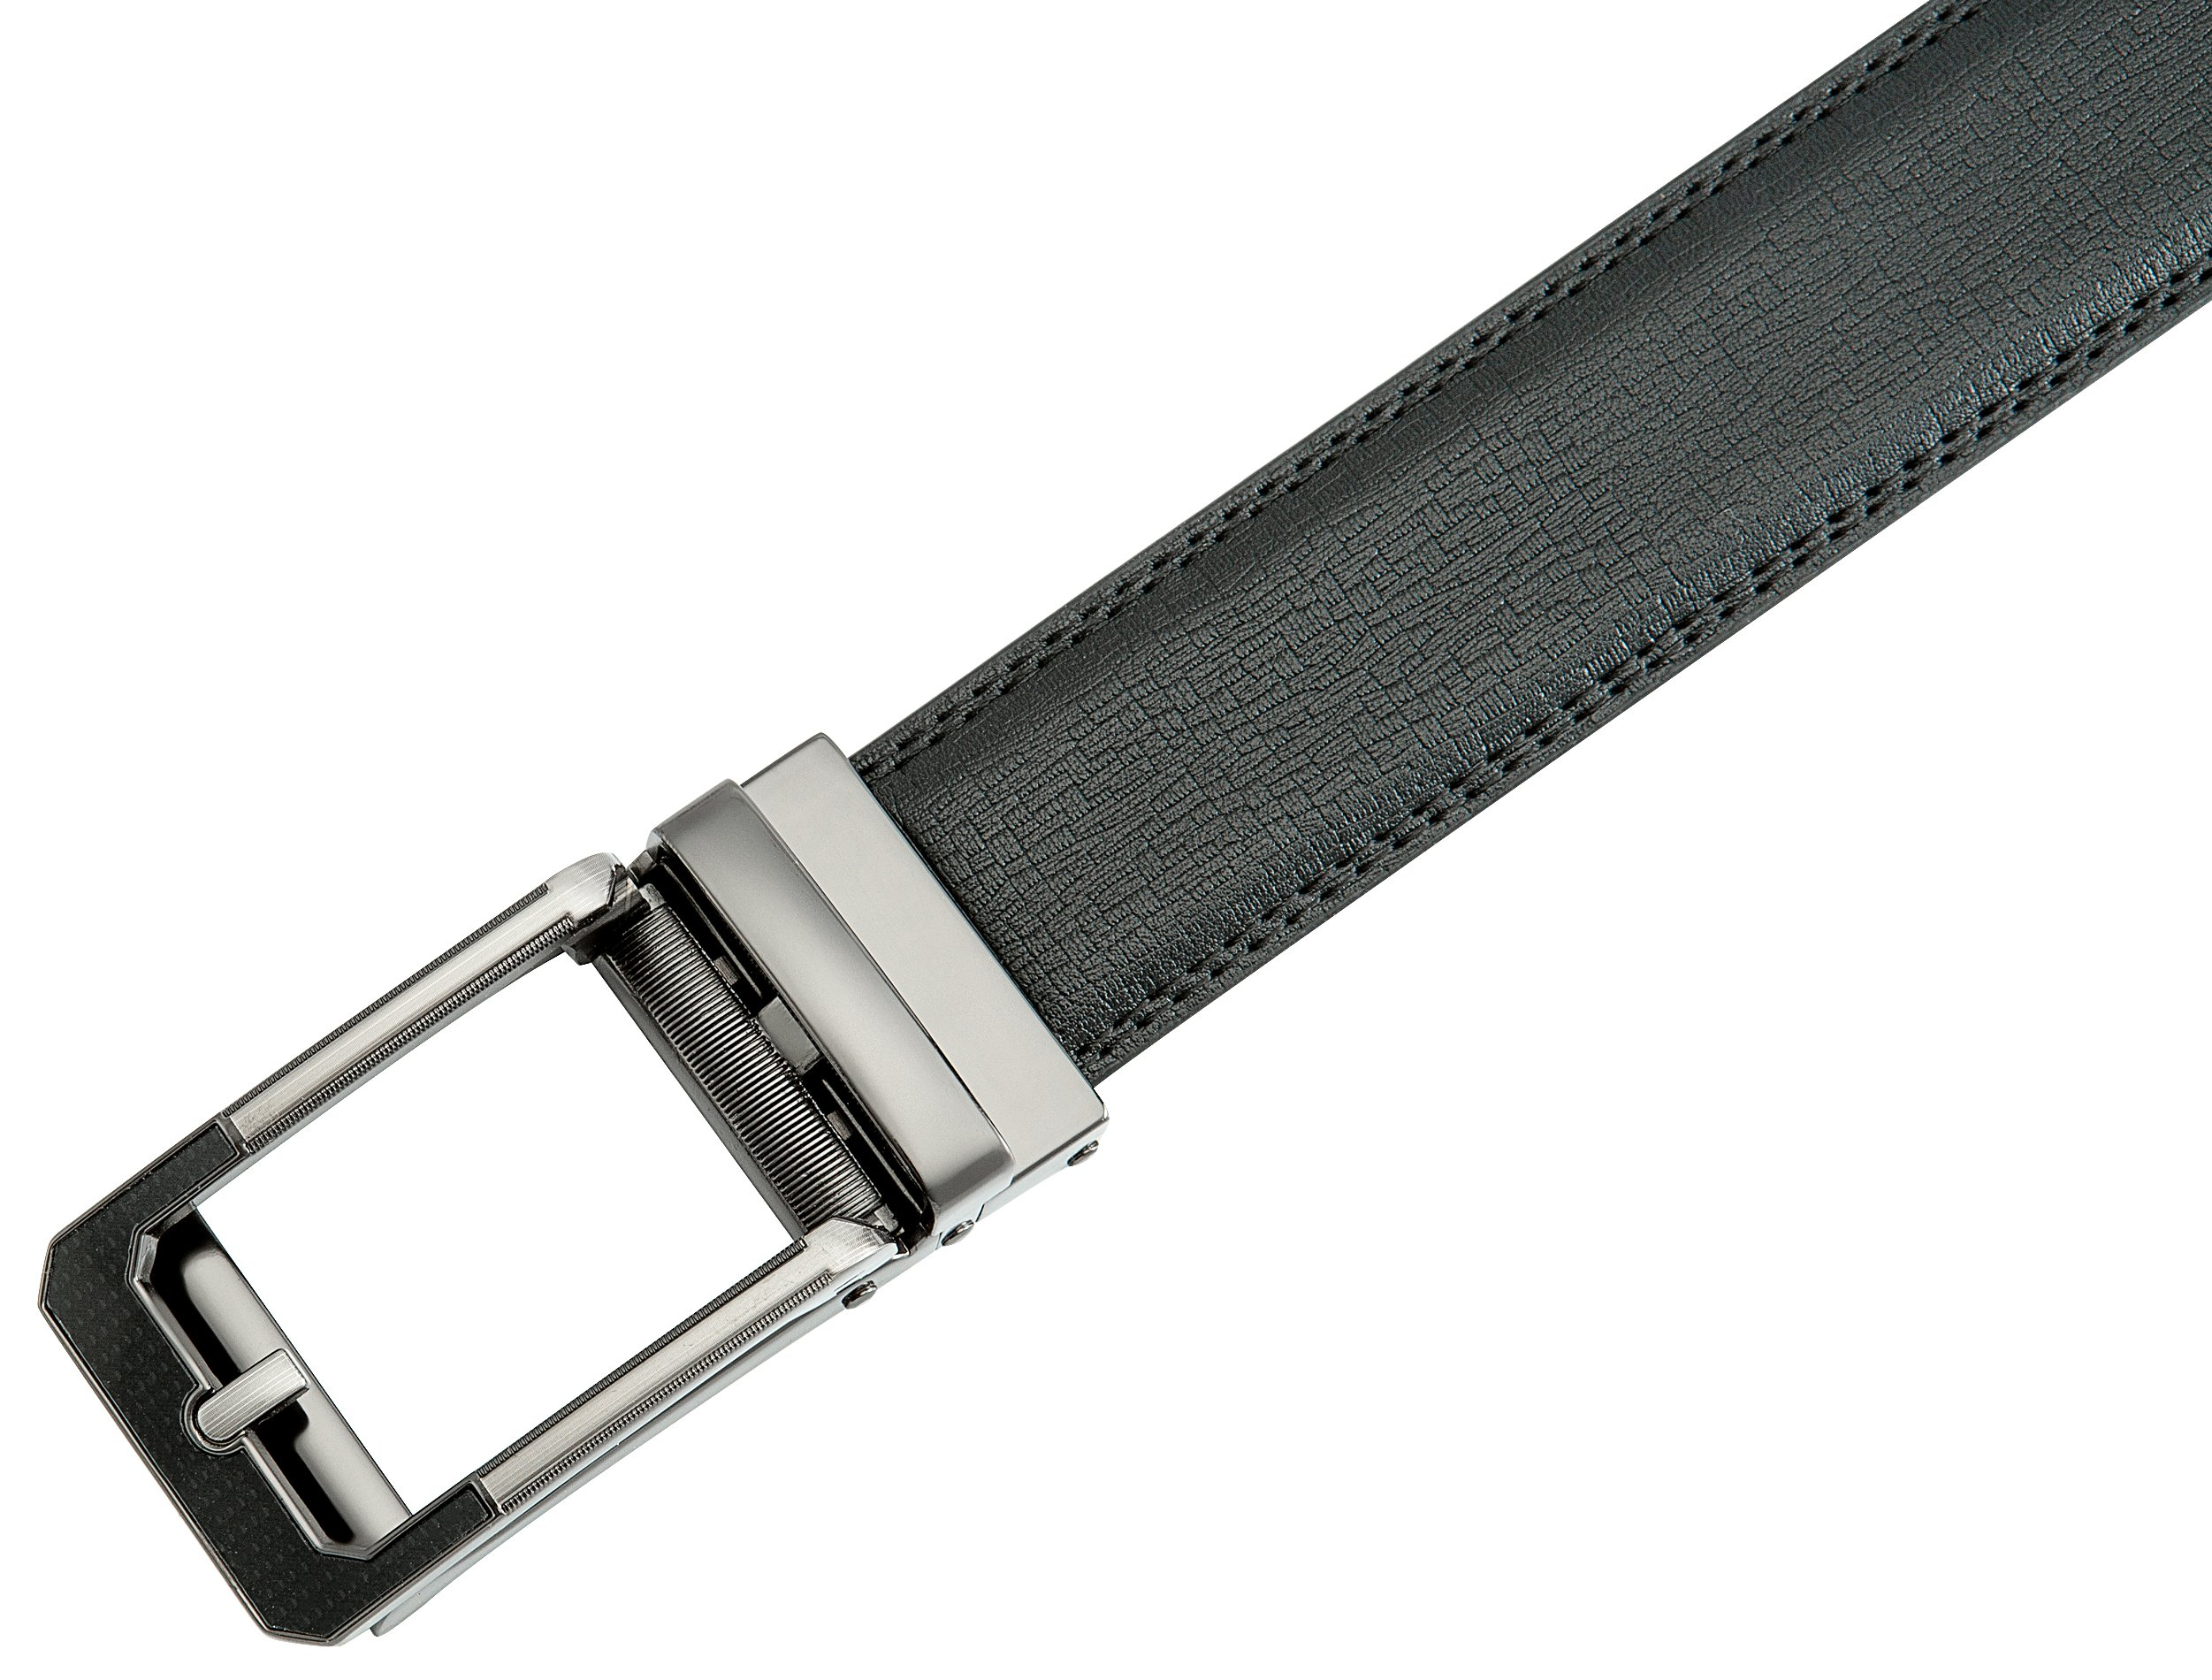 Men's Black Ratchet Belt - Black and Silver Open Style - by J. Dapper by J. Dapper (Image #6)